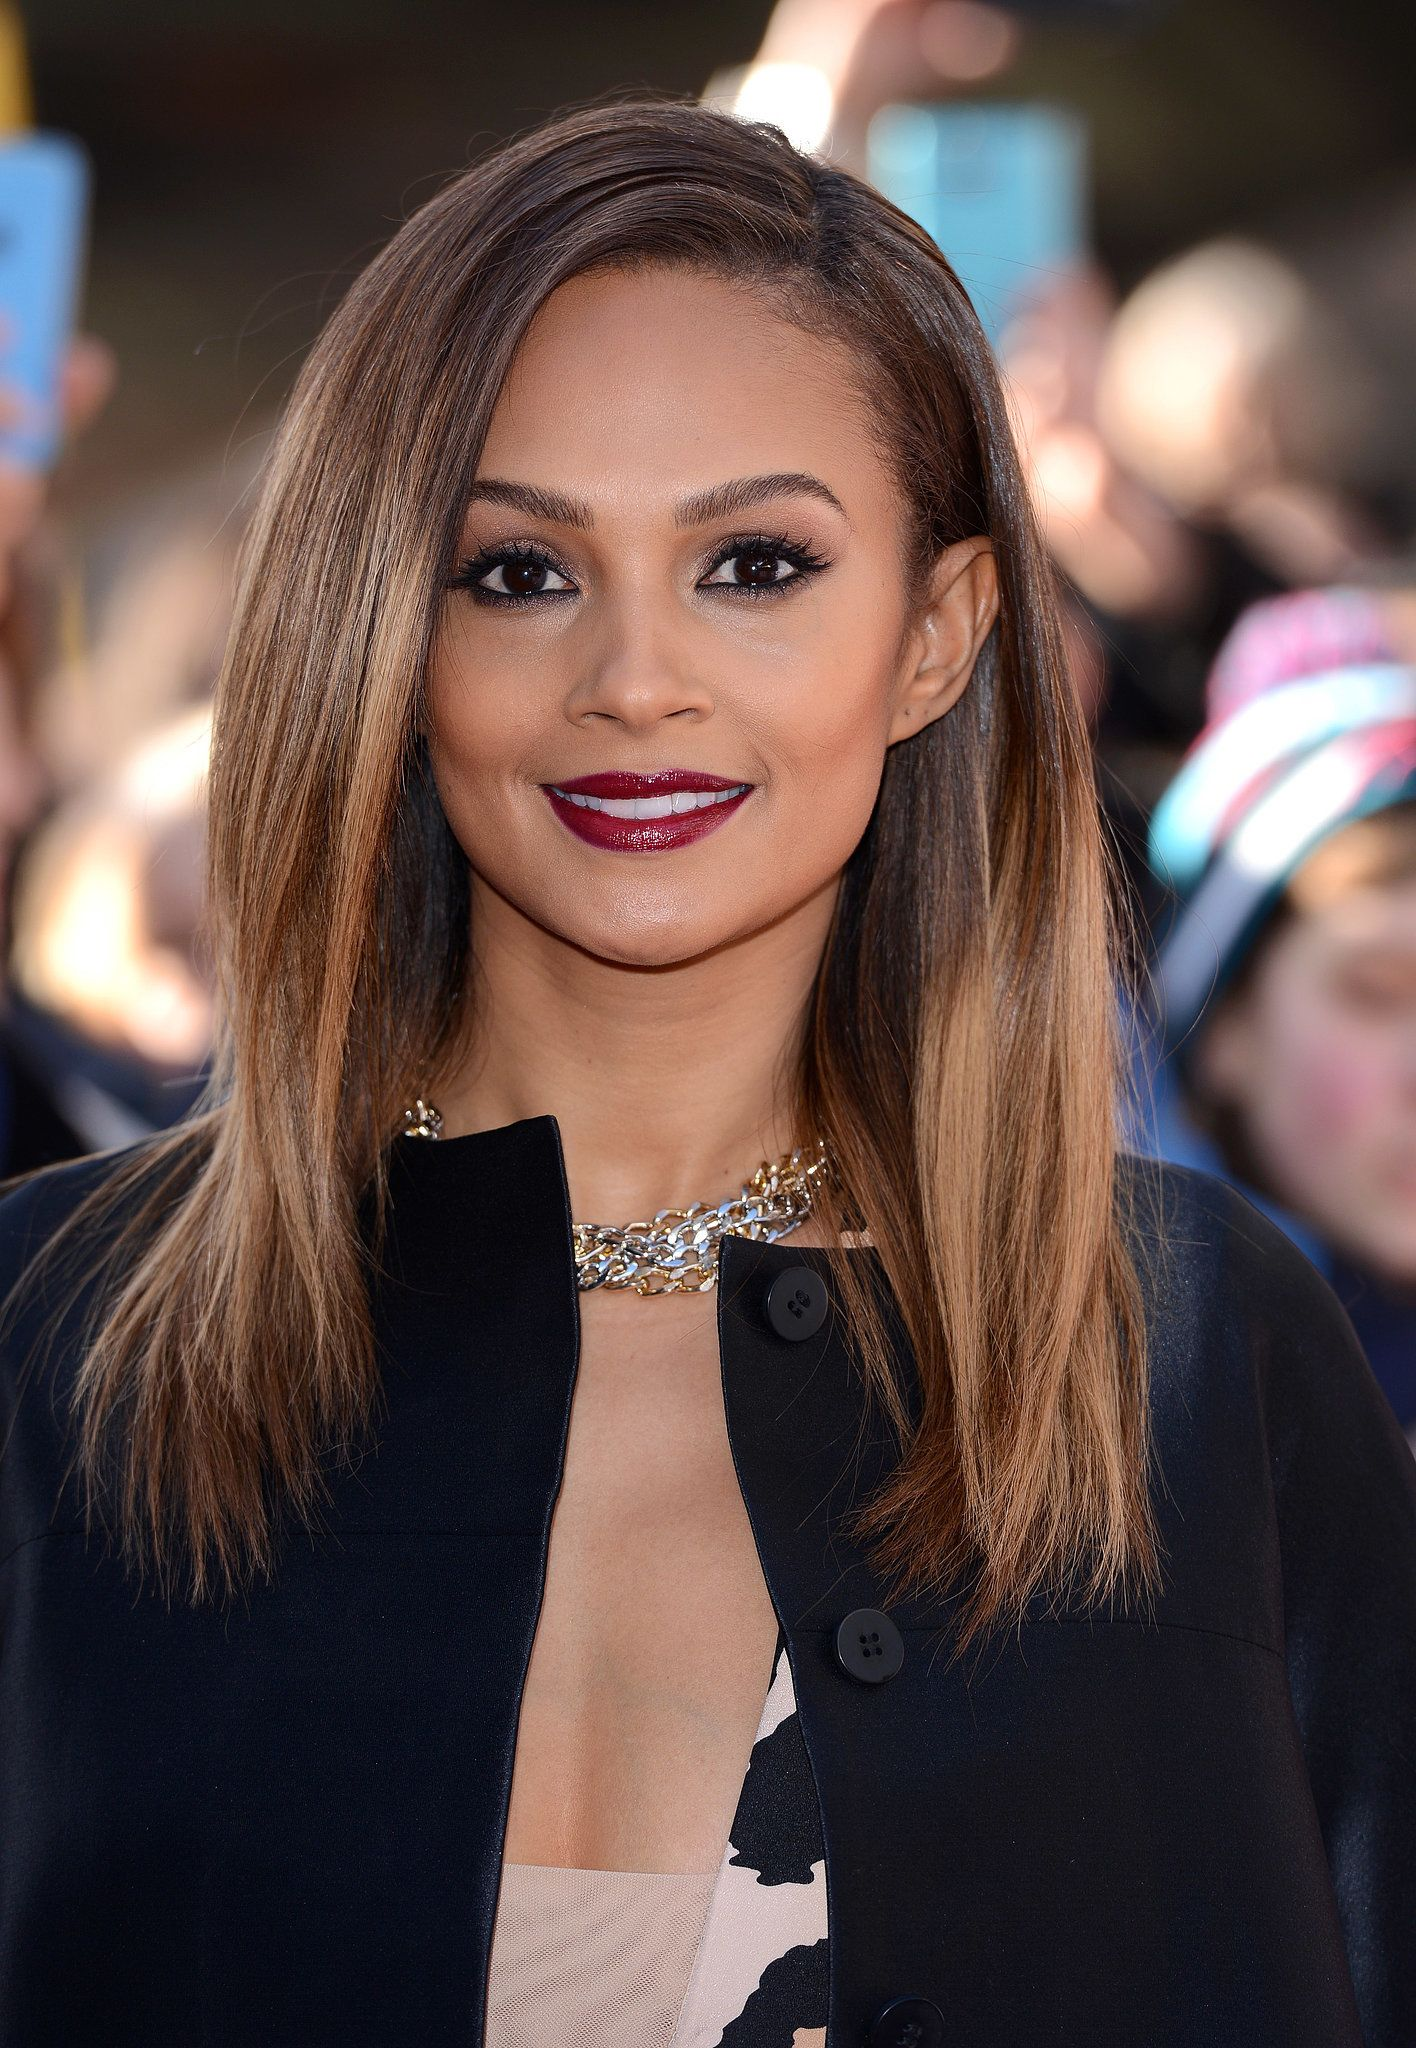 Alesha Dixon Long Curly Hairstyles 2013